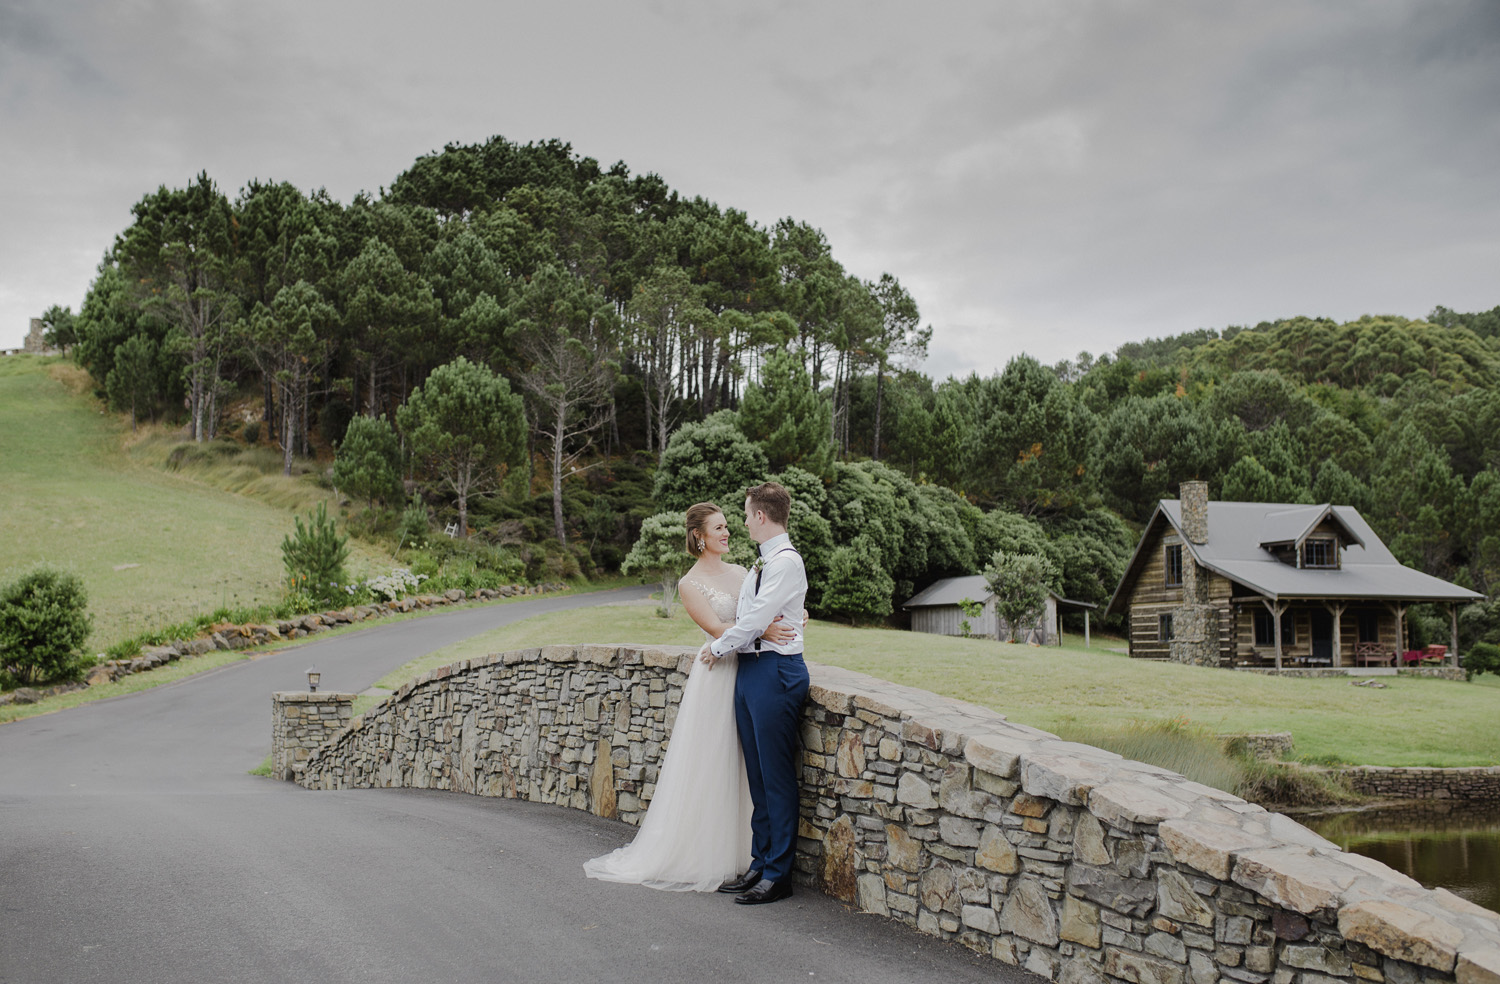 Bride and groom at bridge at Leadfoot Ranch wedding